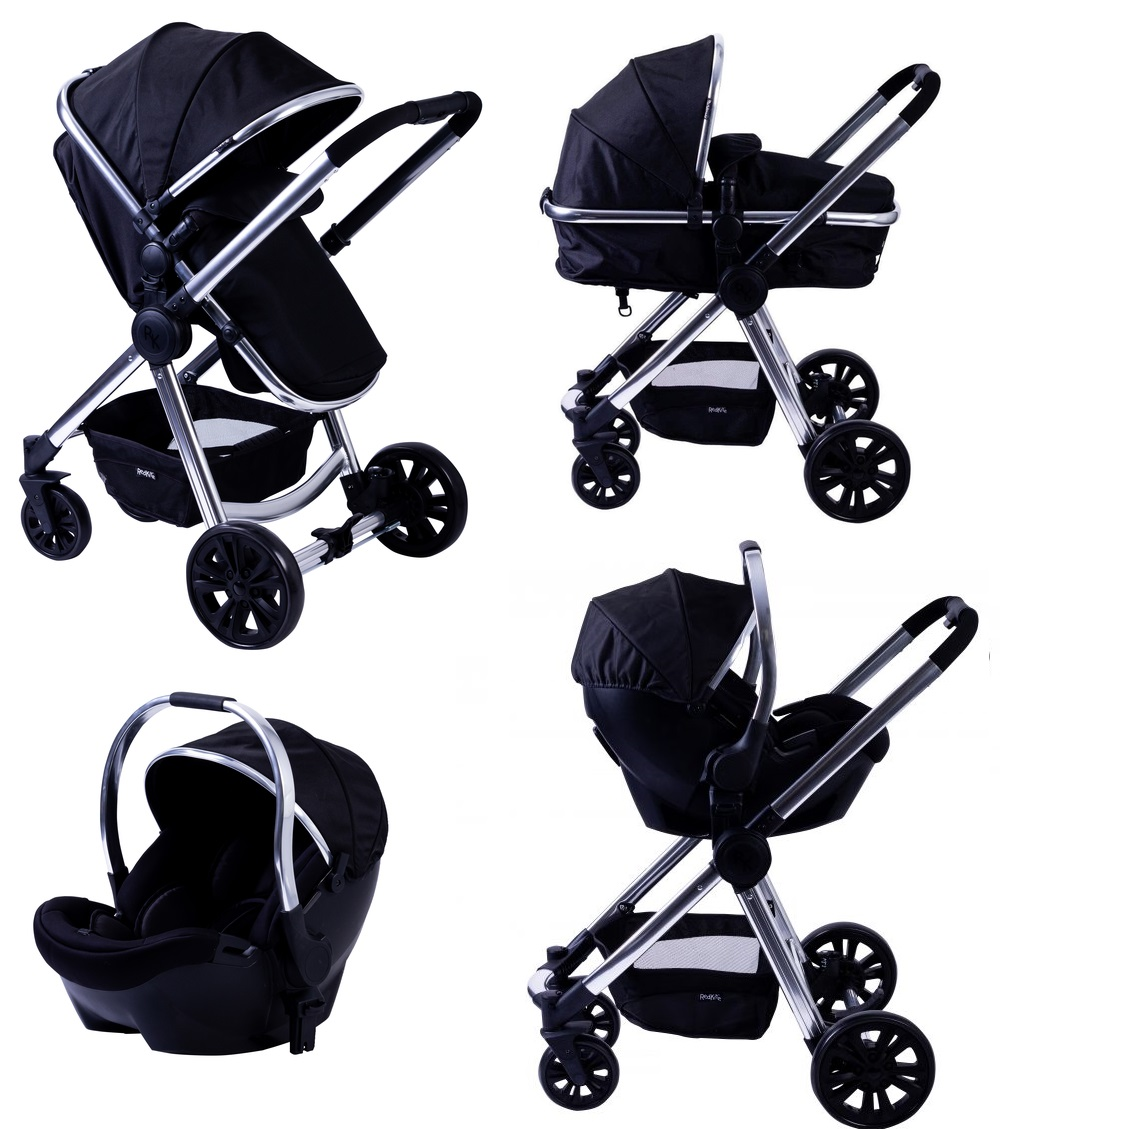 601a16fcaee75 Red Kite Push Me Fusion Travel System - Onyx - Smart Kid Store